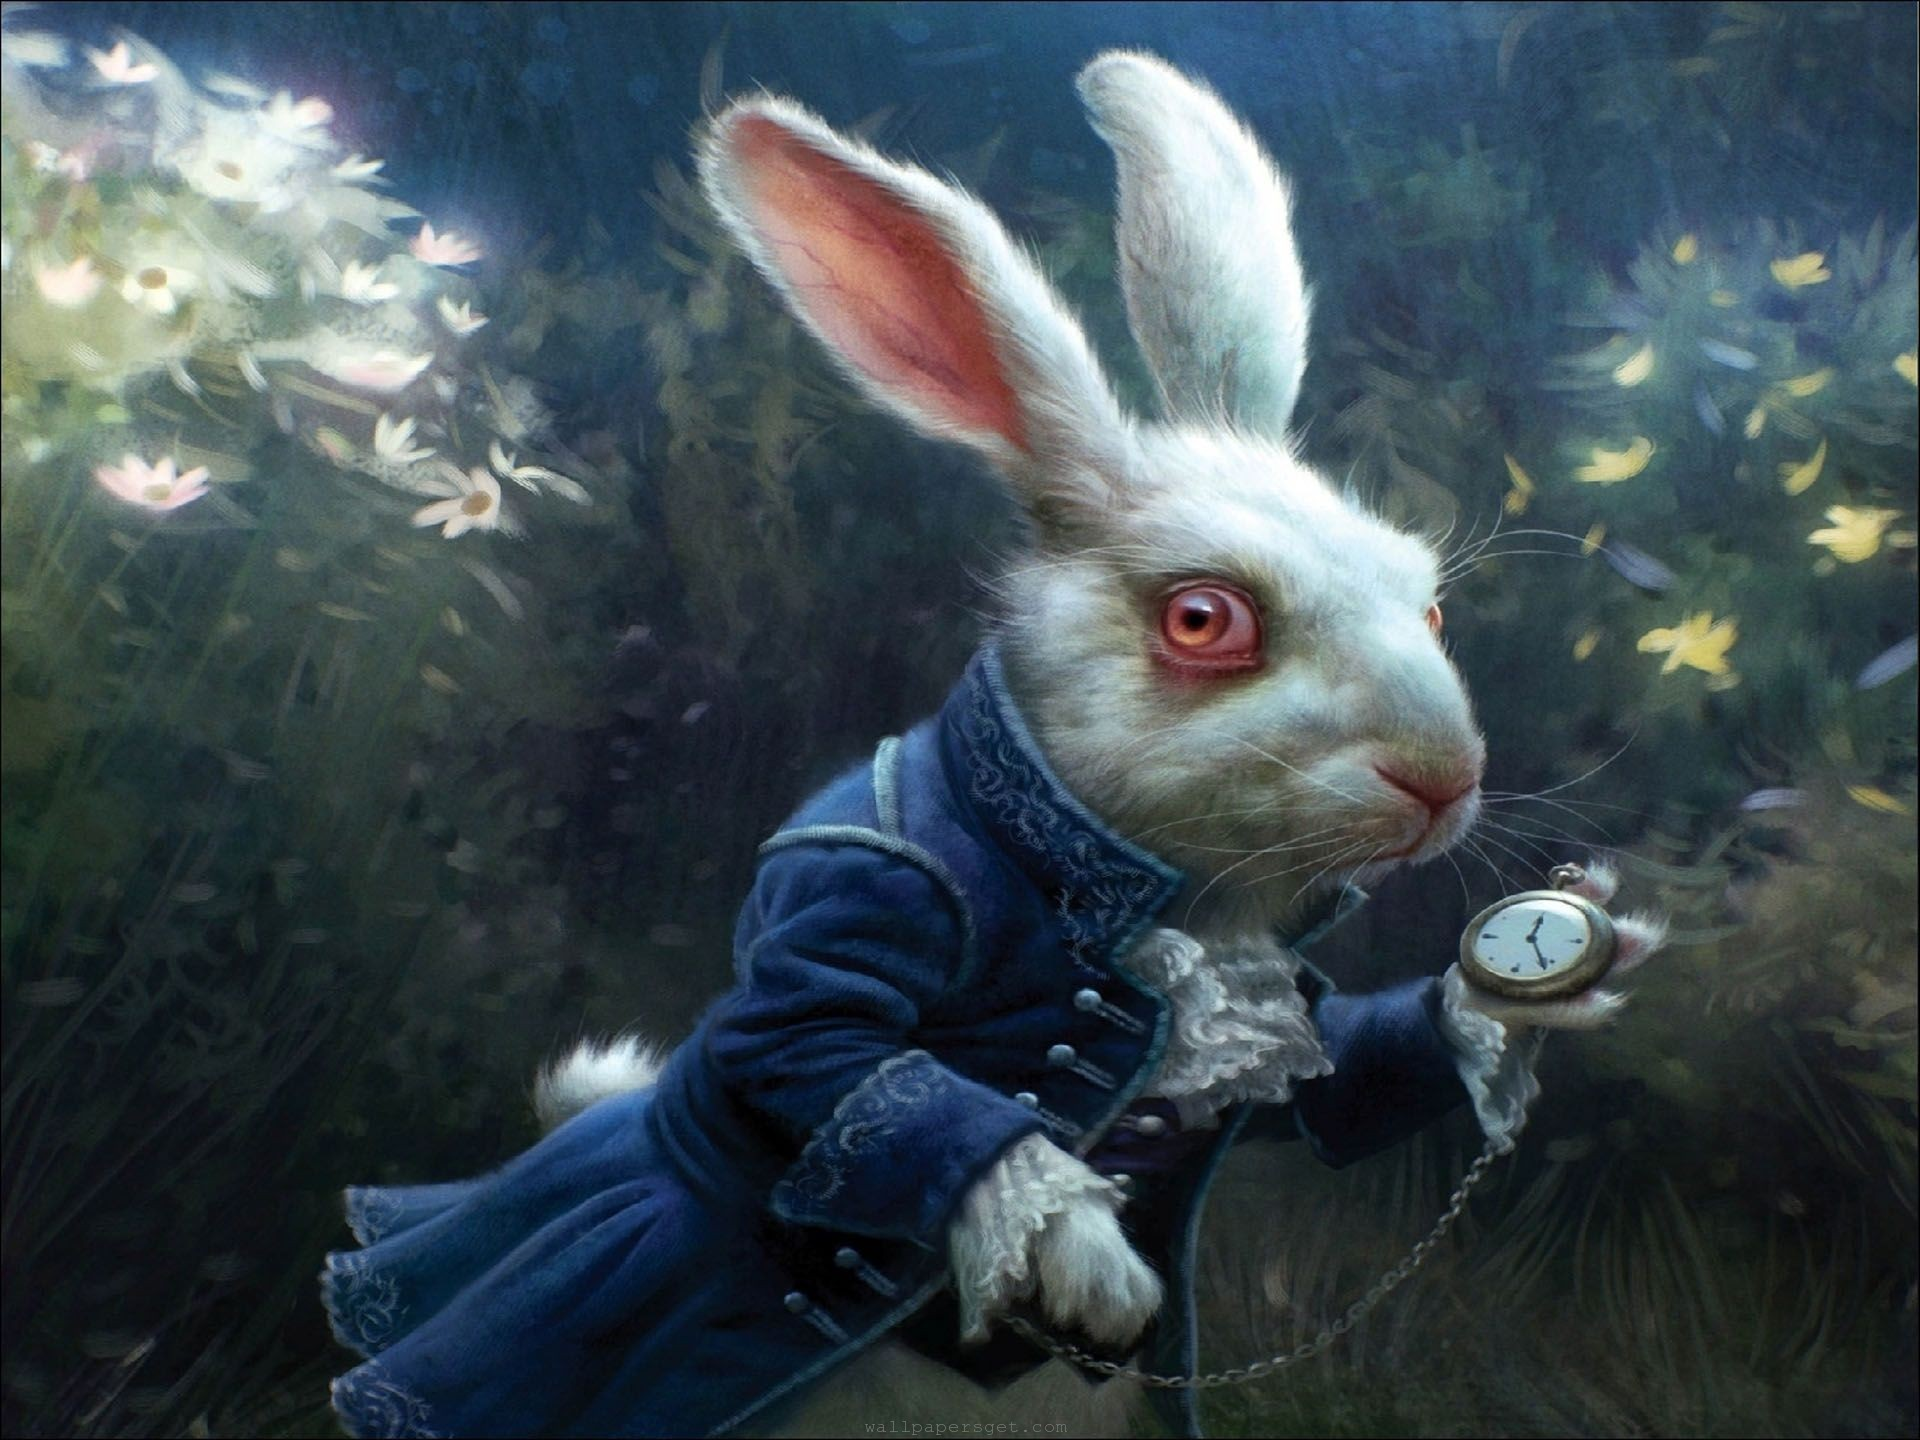 1920x1440 'Alice in Wonderland' White Rabbit Concept Art by Michael Kutsche. It's  beautifully done and the rabbit looks smart in its costume.